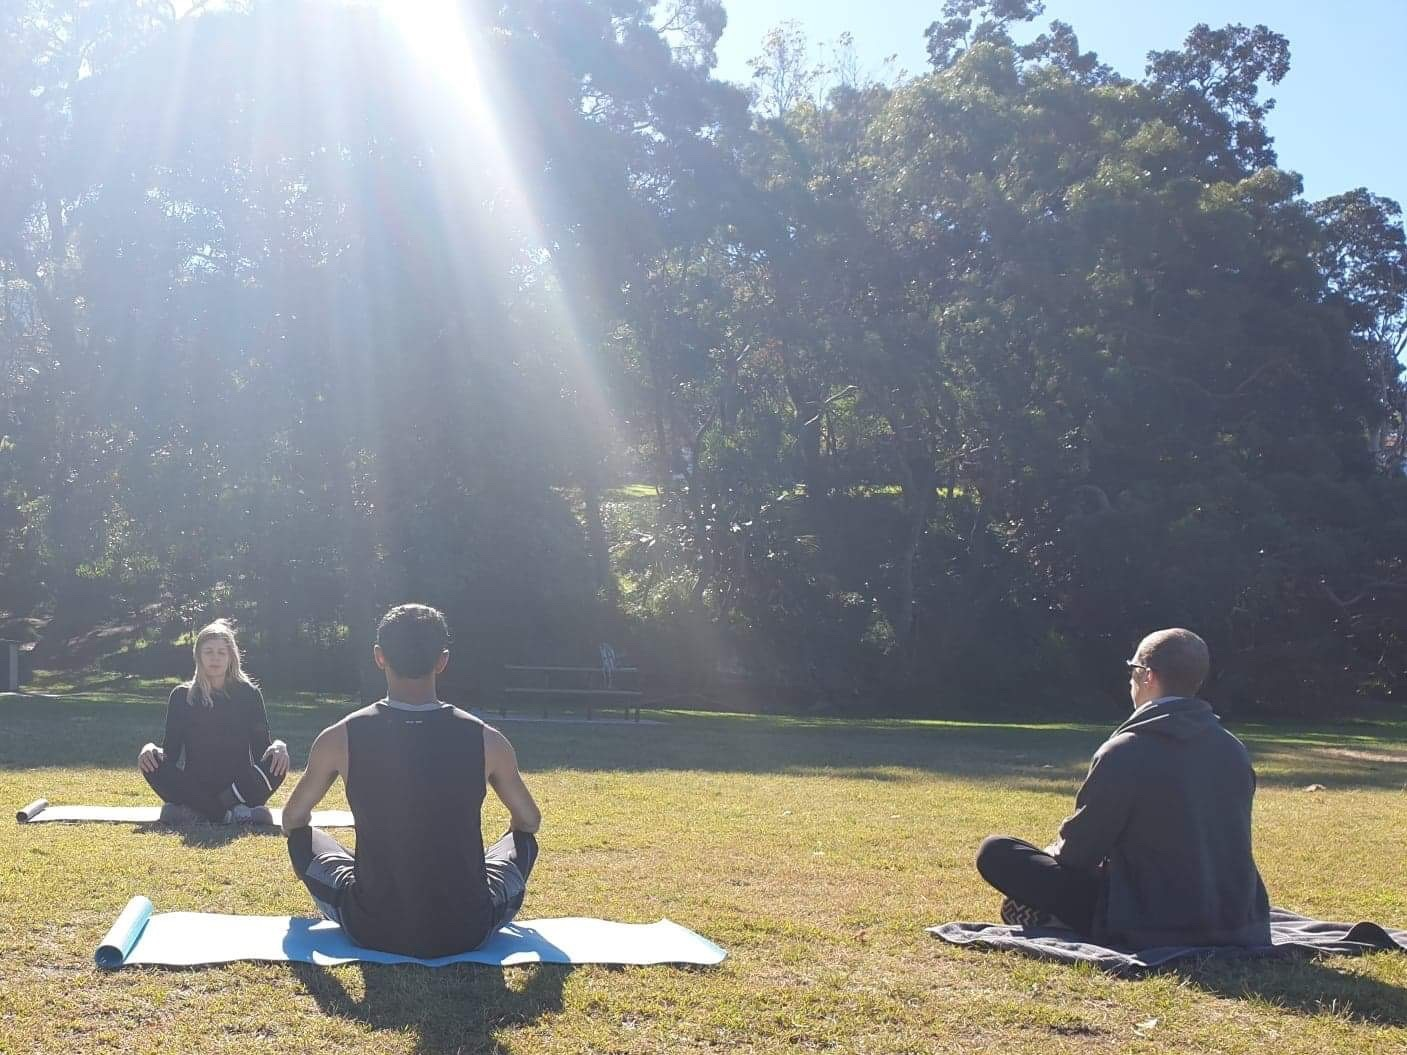 ~ Meditation Session in the Park ~